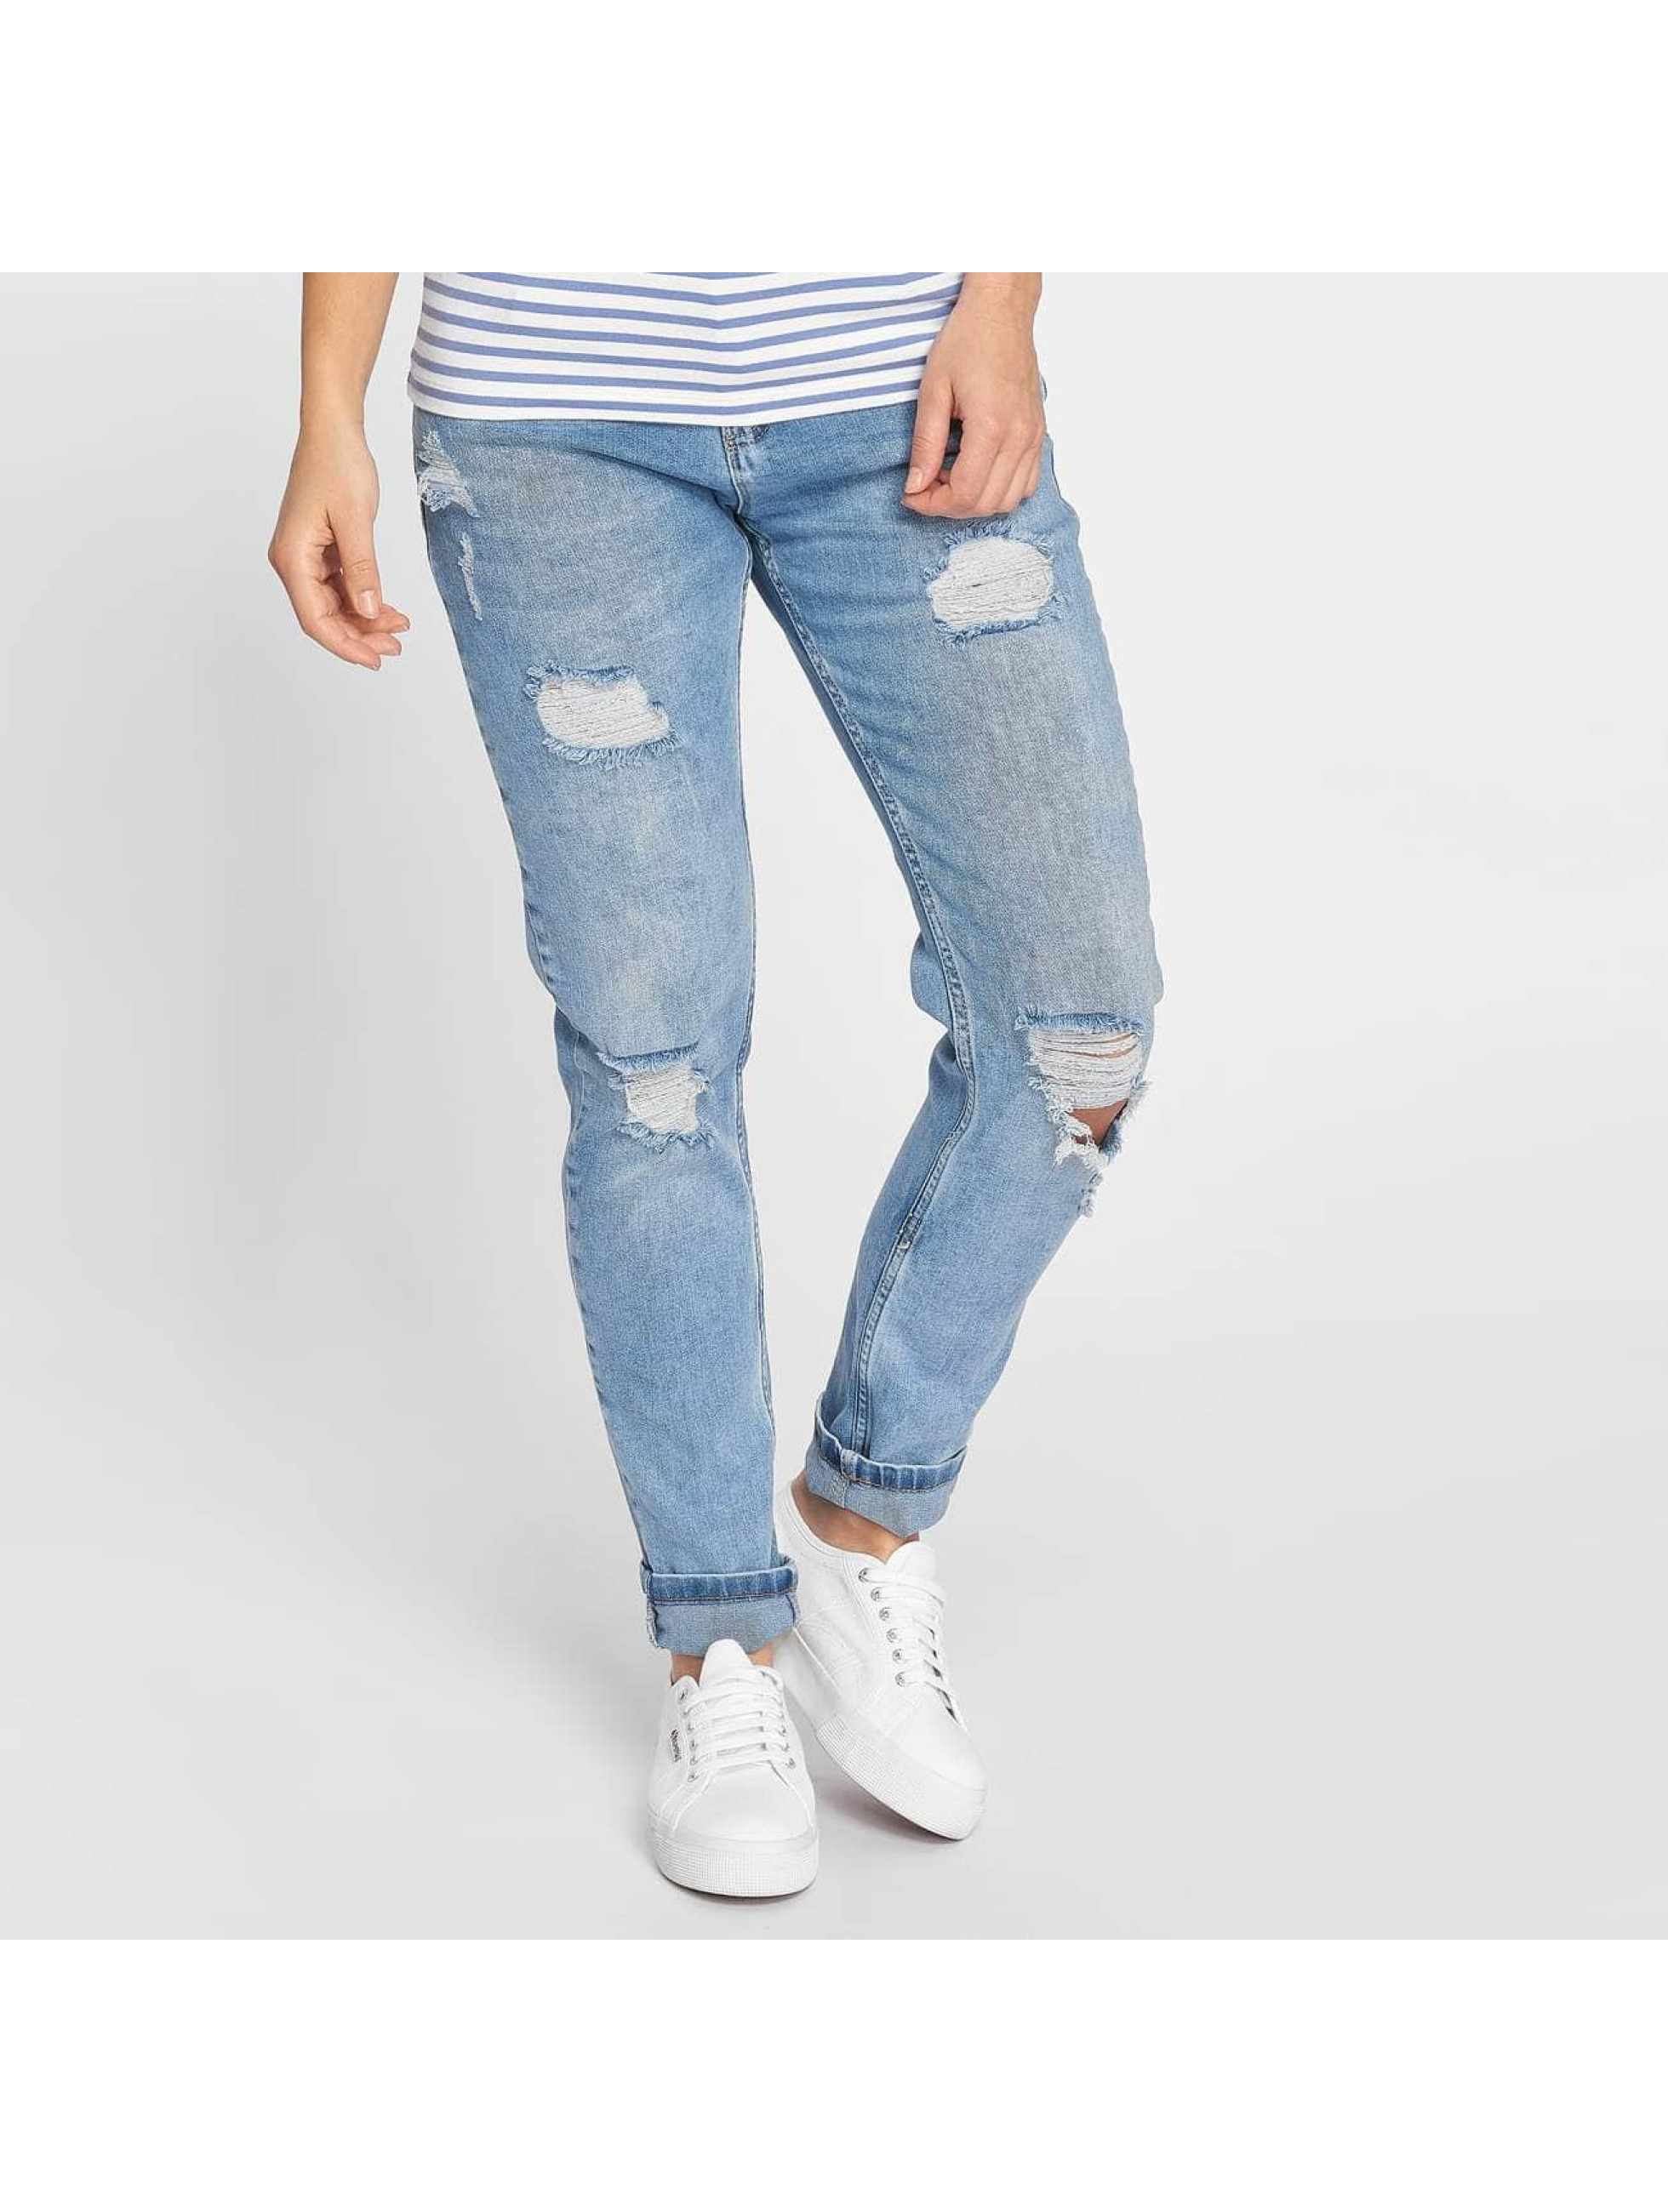 Just Rhyse / Boyfriend Jeans Bubbles in blue M